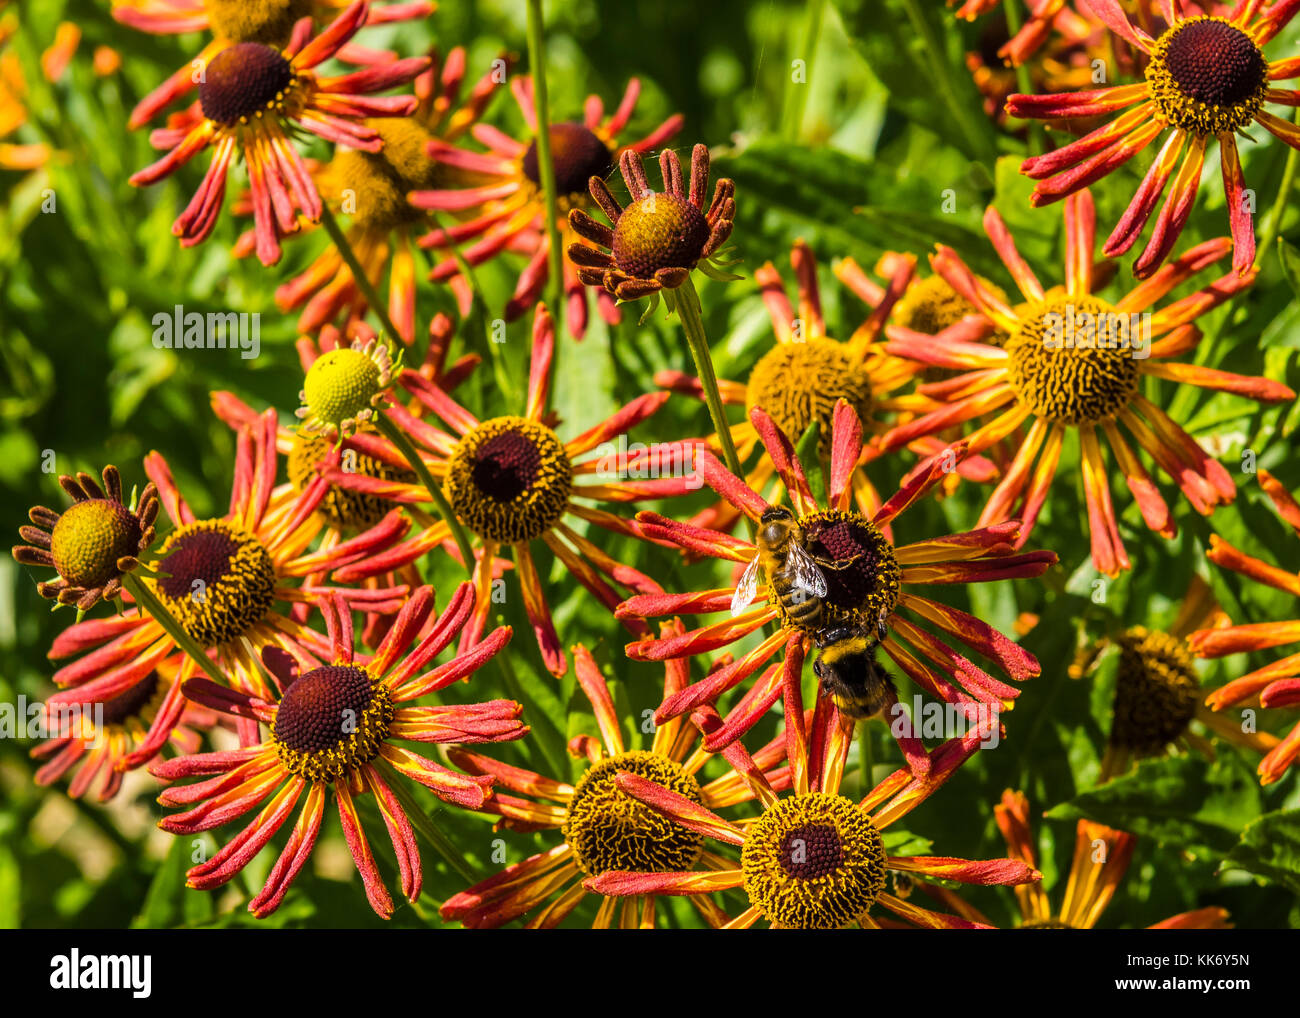 Bee sat on orange flowers in a Buckinghamshire garden, UK - Stock Image